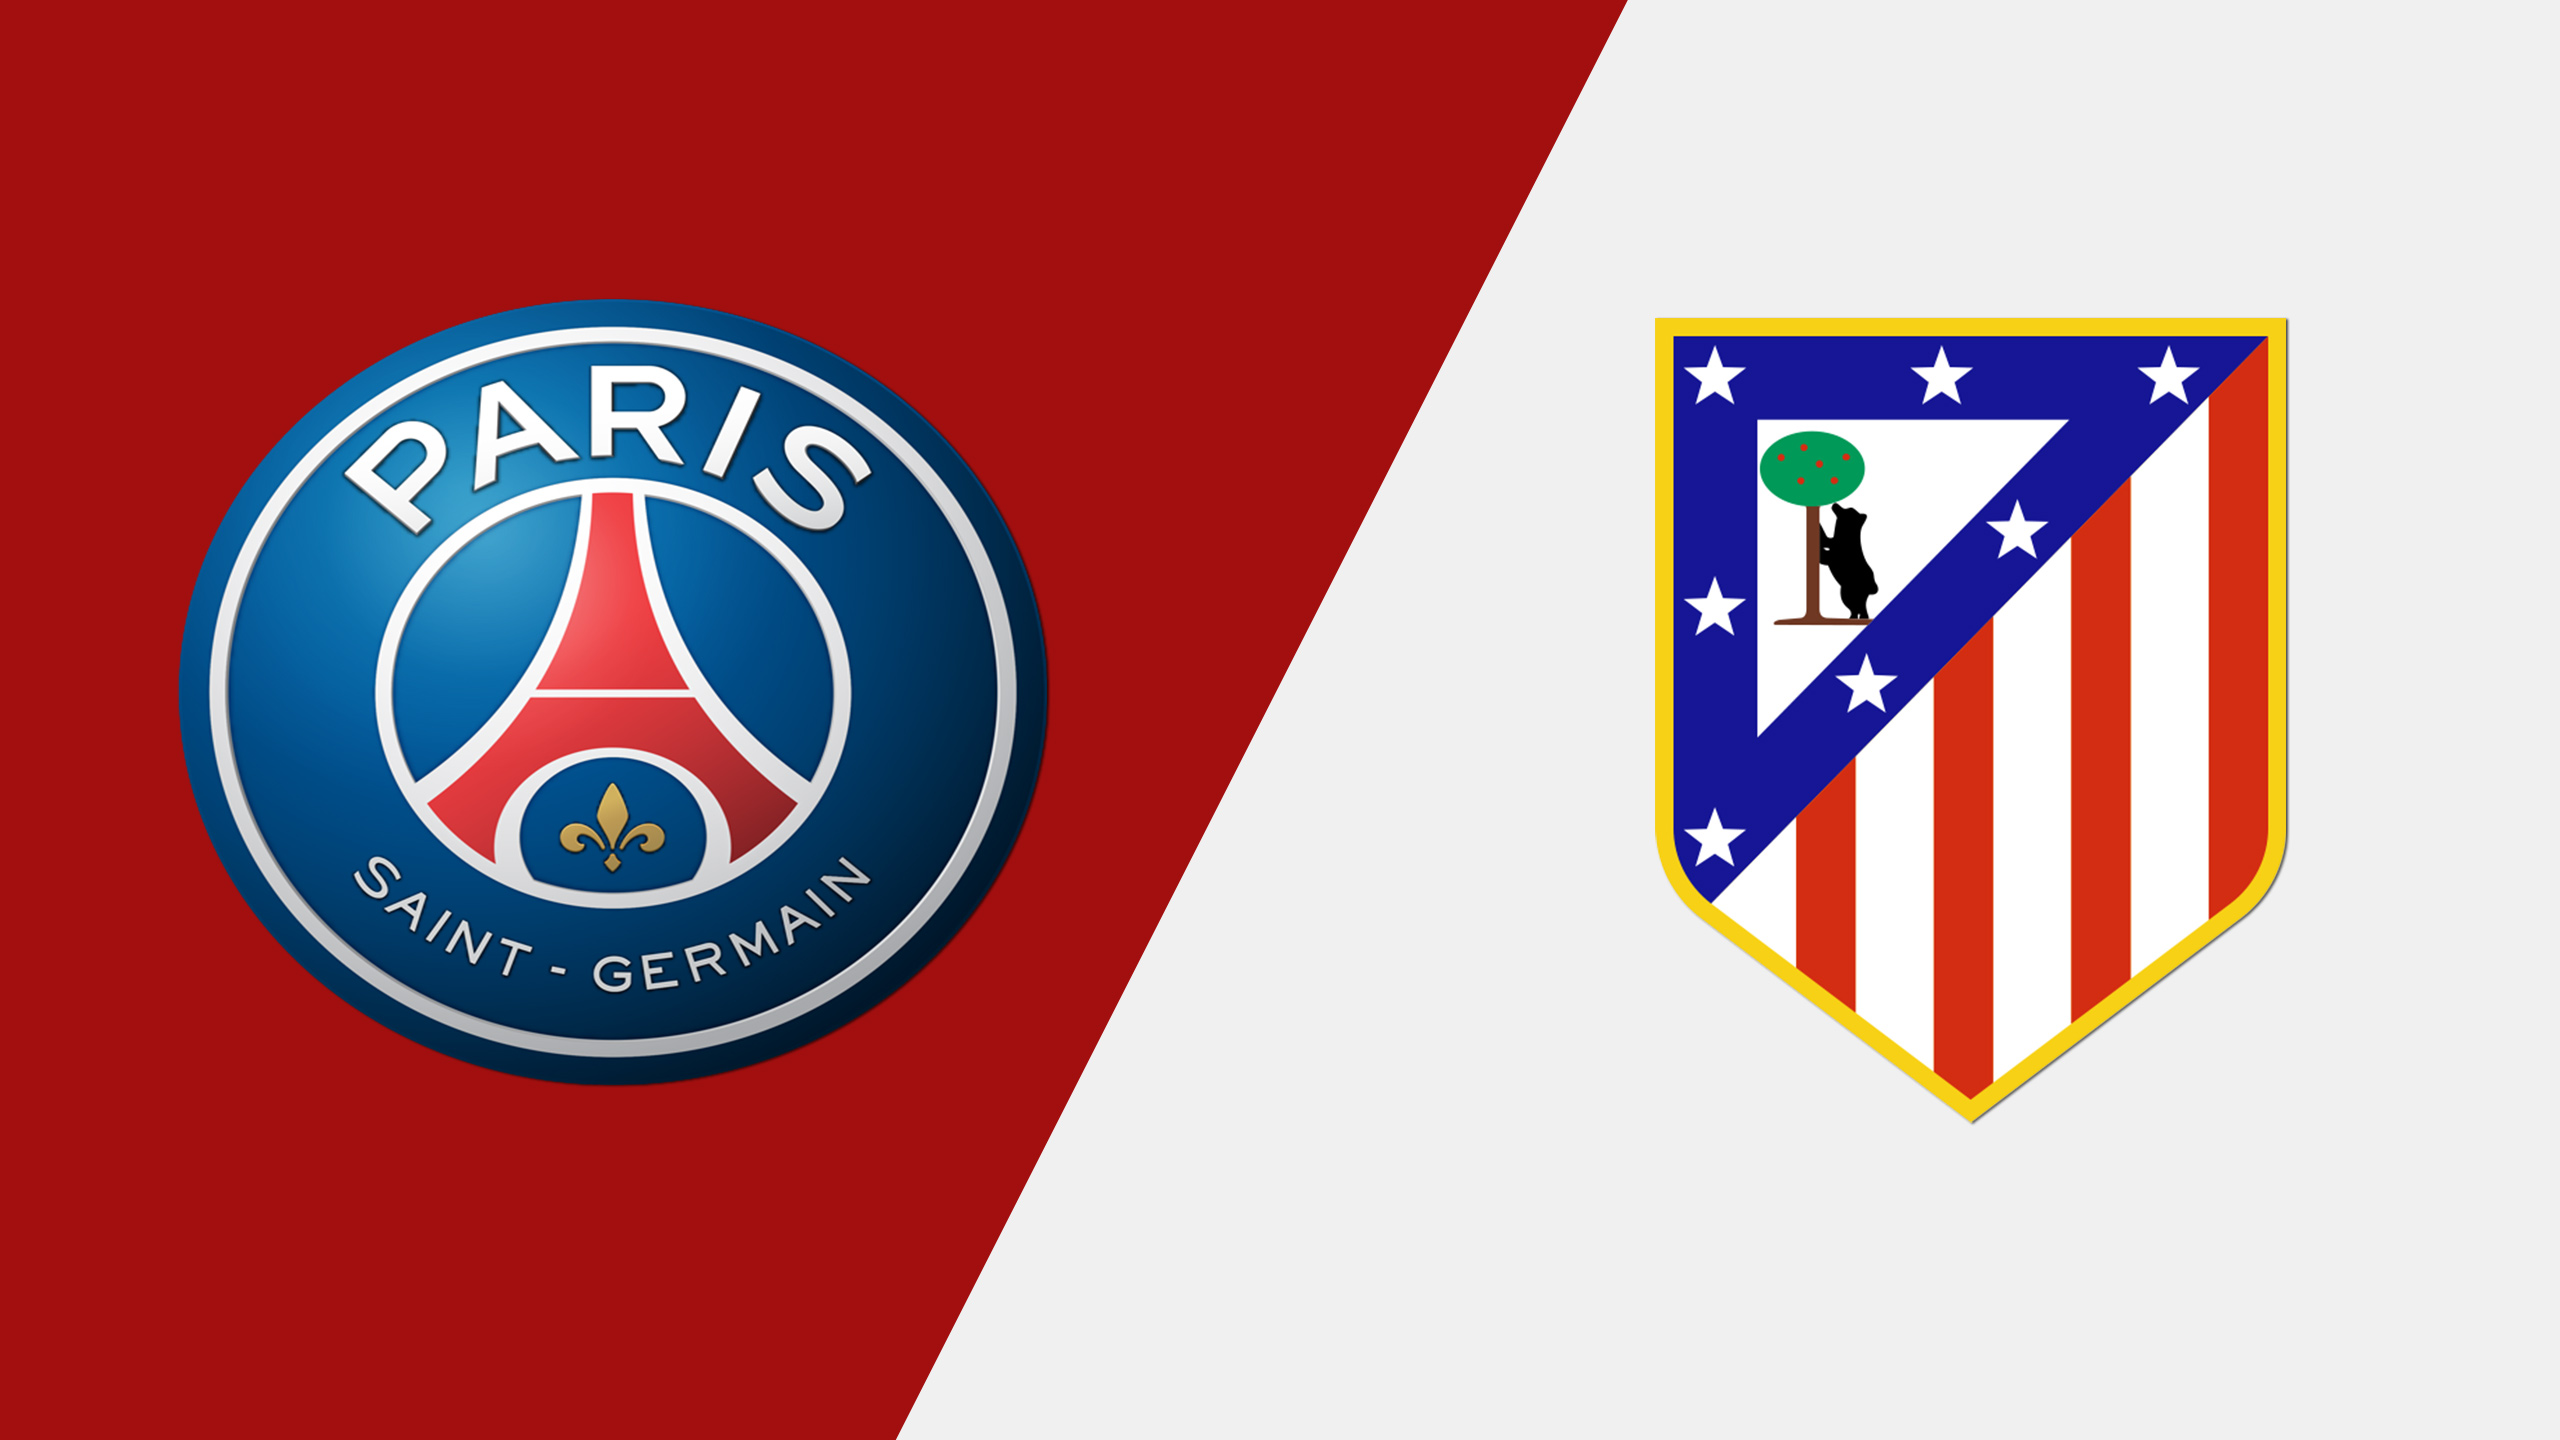 In Spanish - Paris Saint Germain vs. Atlético Madrid (International Champions Cup) (re-air)